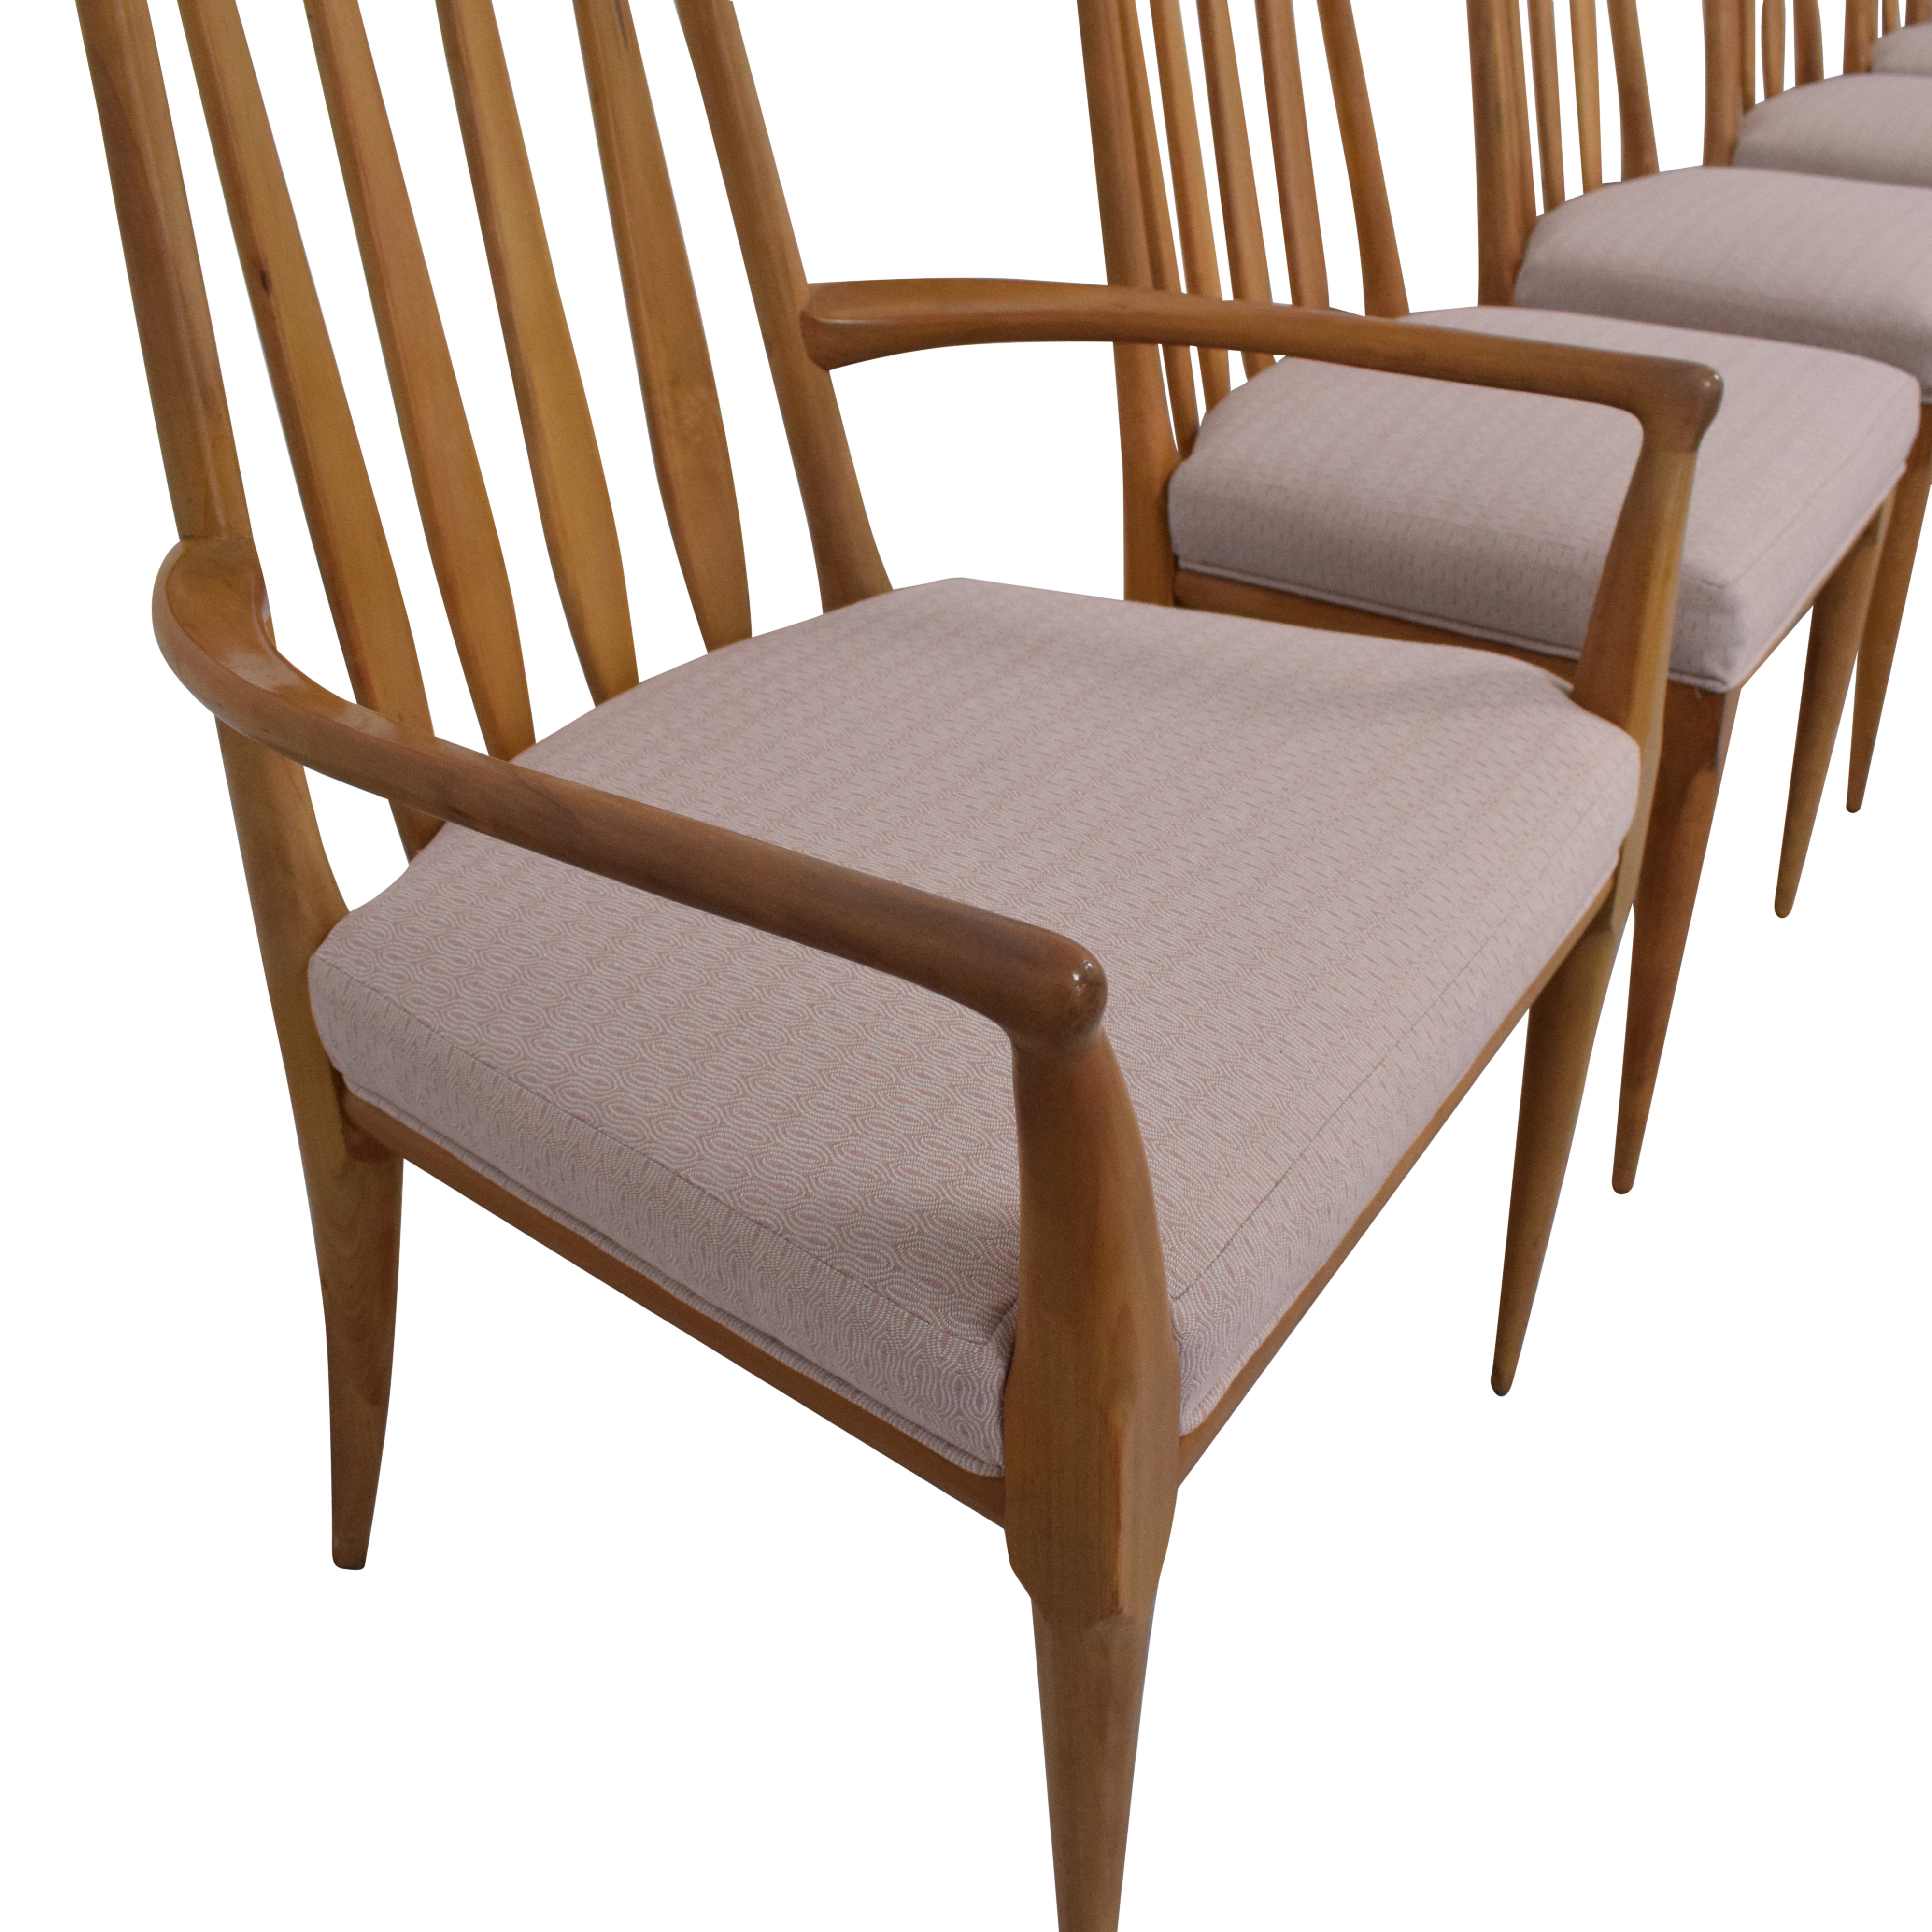 Johnson Furniture Johnson Furniture Spindle Back Dining Chairs used